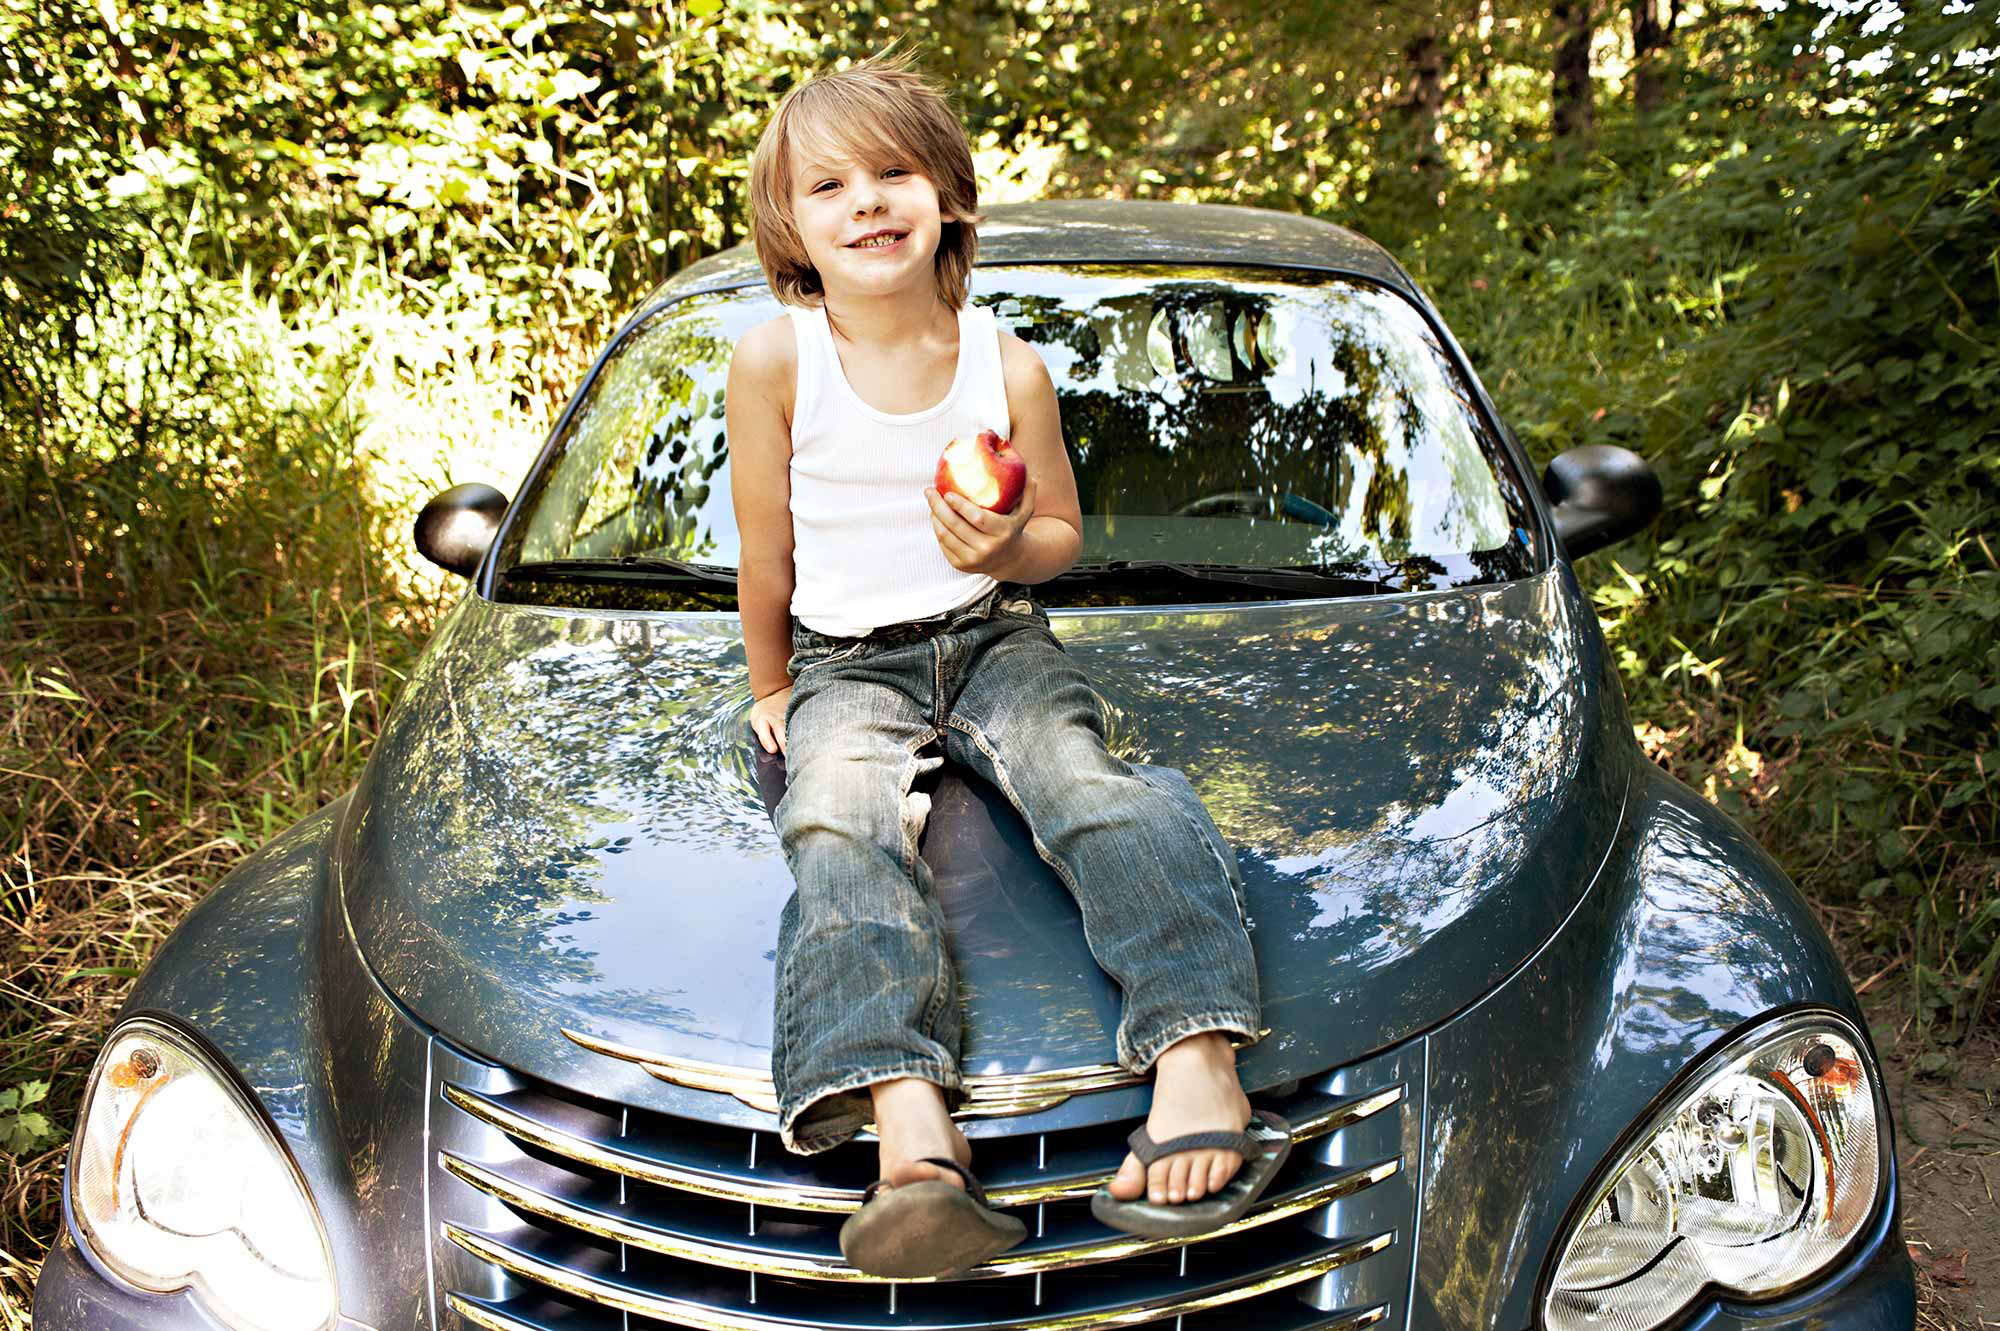 Boy eating an apple while sitting on my car. Sometimes my tolerance spreads wide.